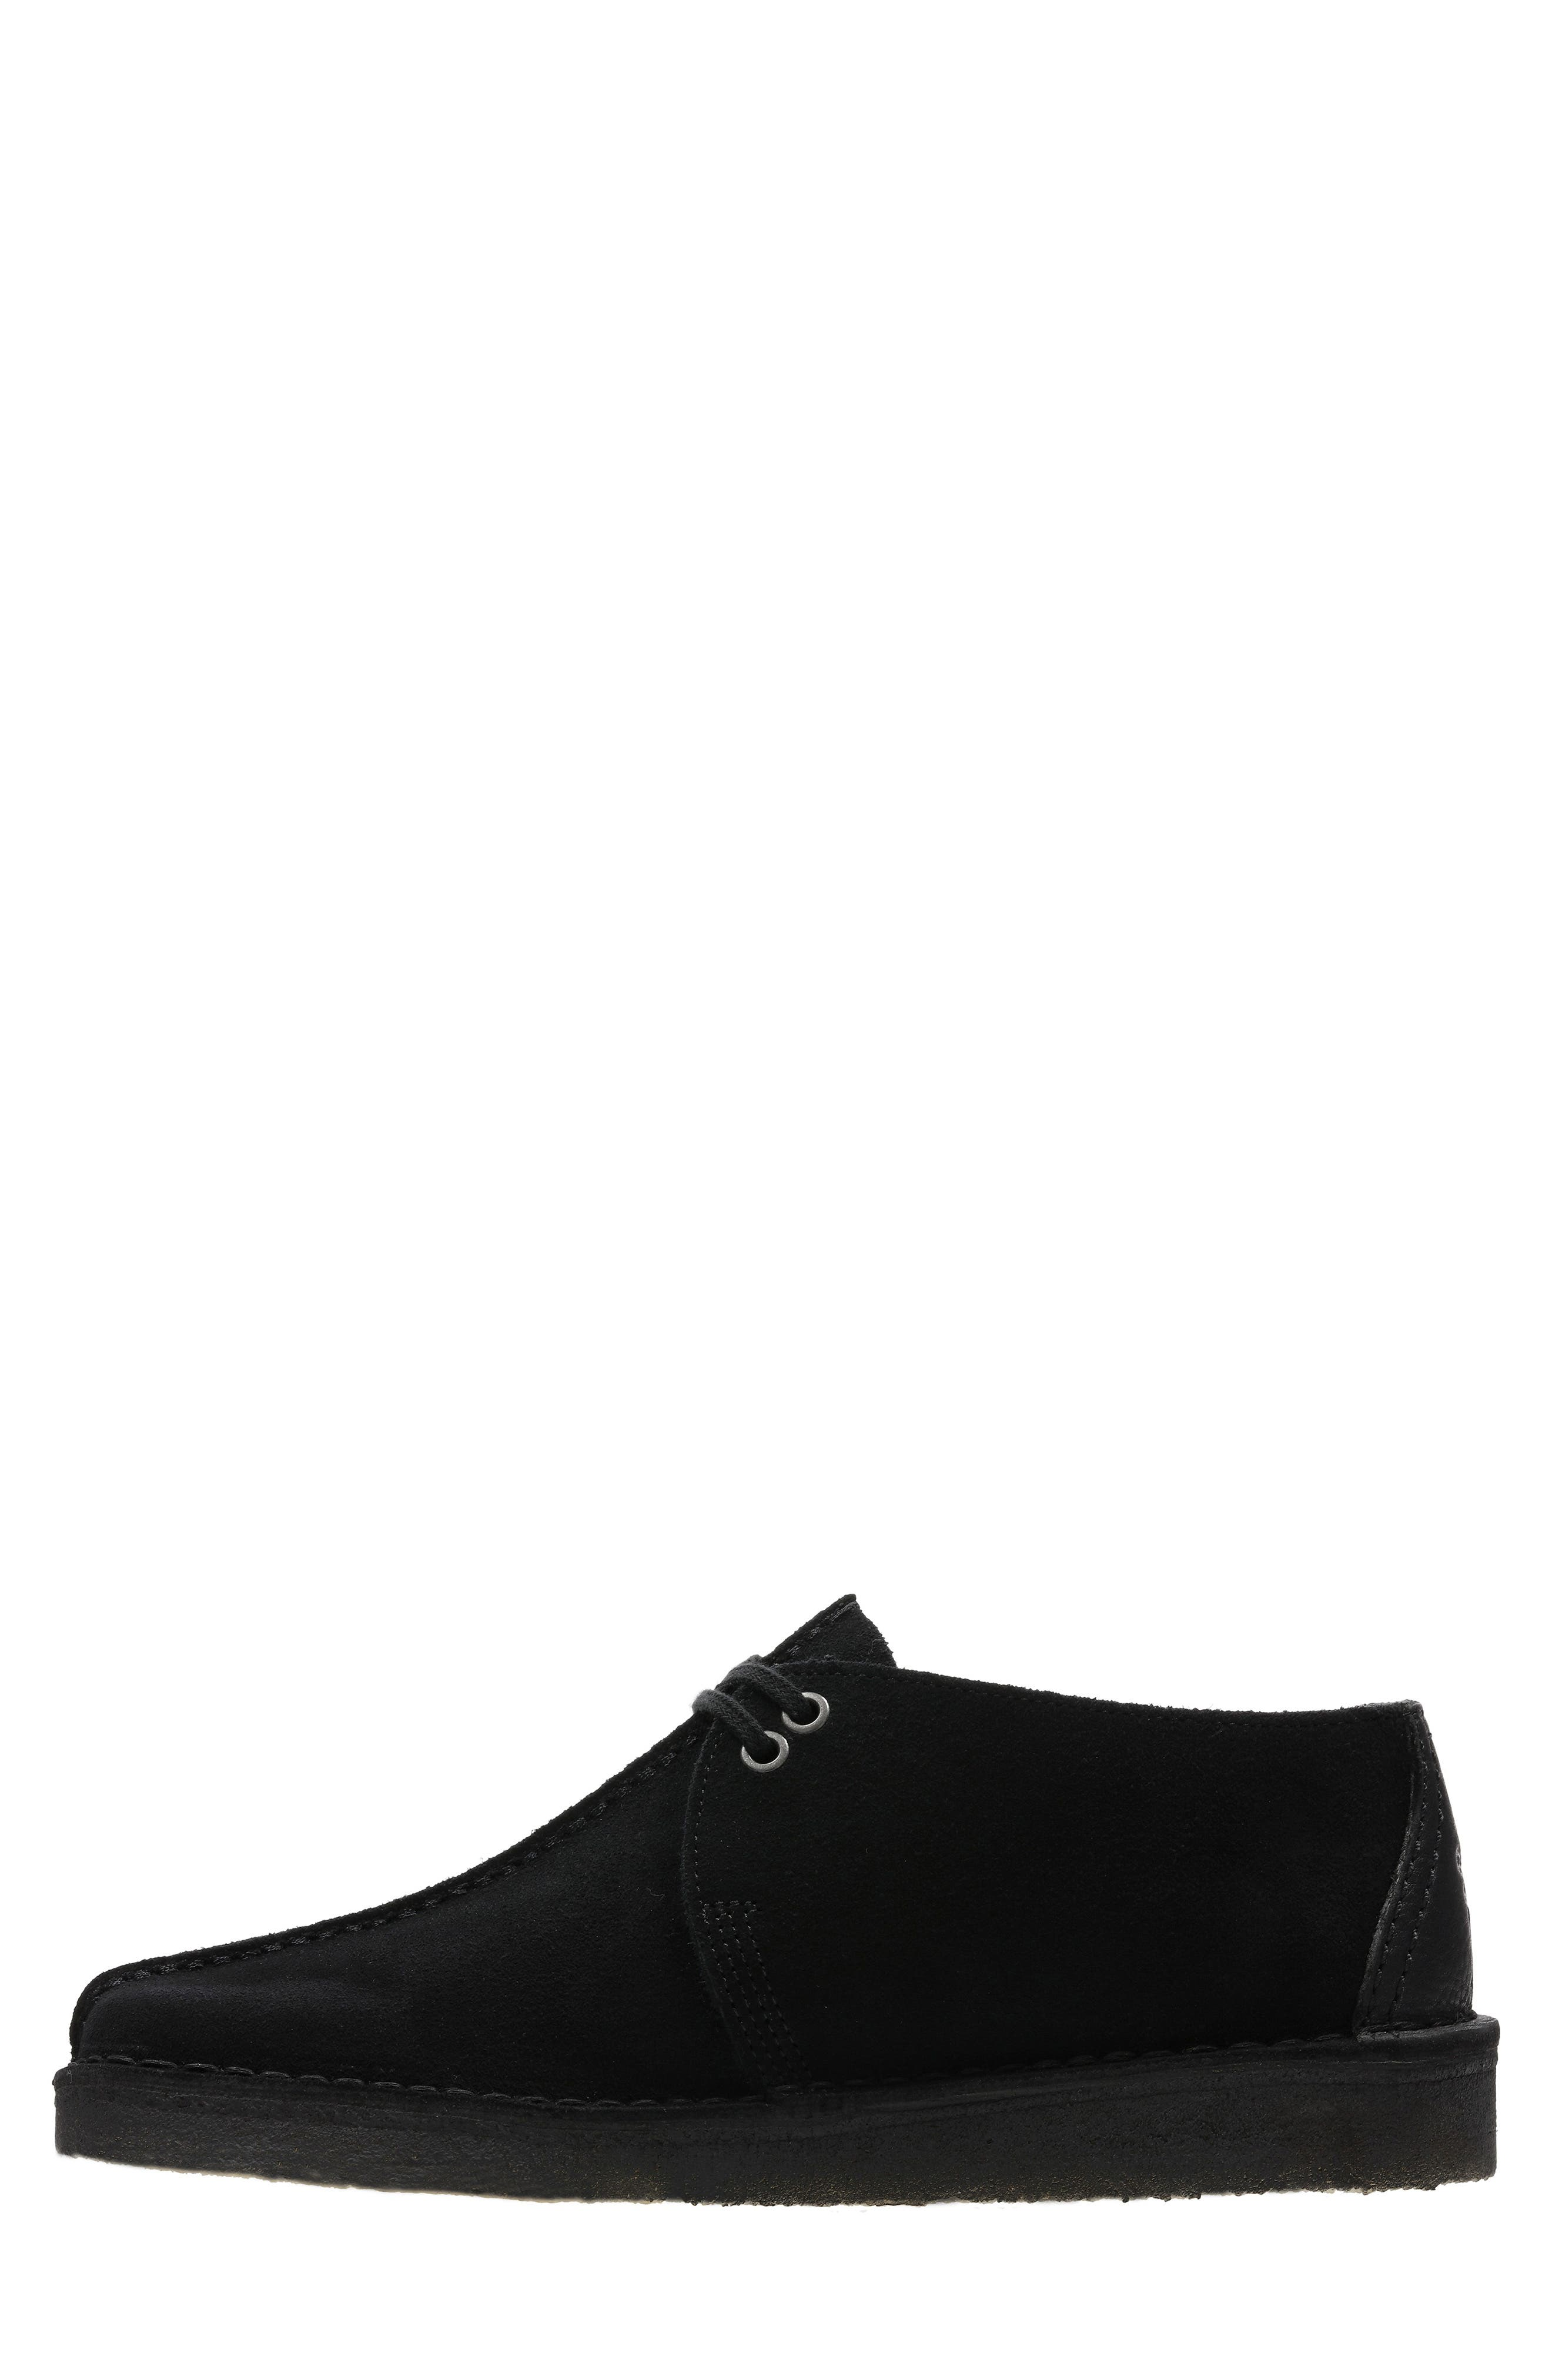 Originals 'Desert - Trek' Oxford,                             Alternate thumbnail 5, color,                             BLACK/BLACK SUEDE